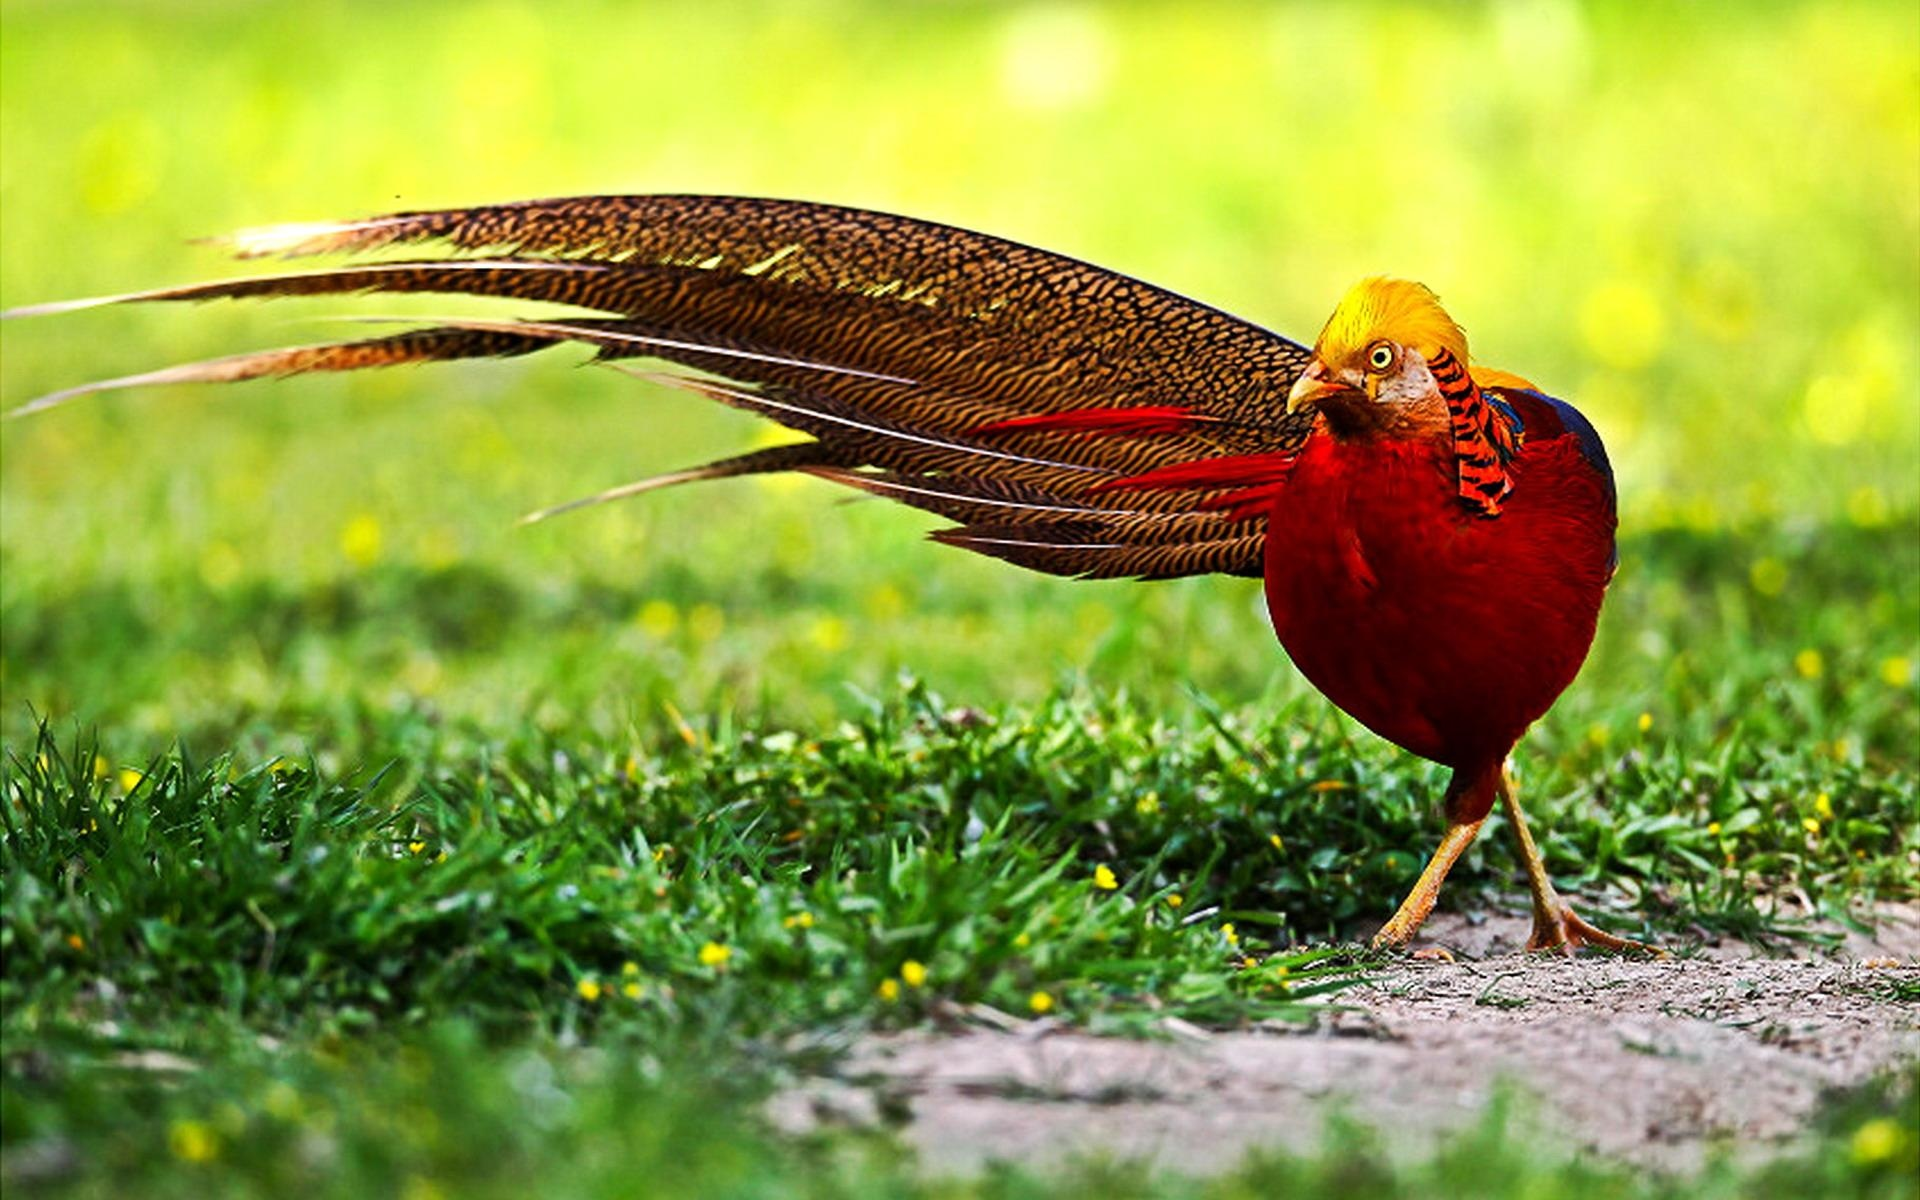 HQ Golden Pheasant Wallpapers | File 414.24Kb